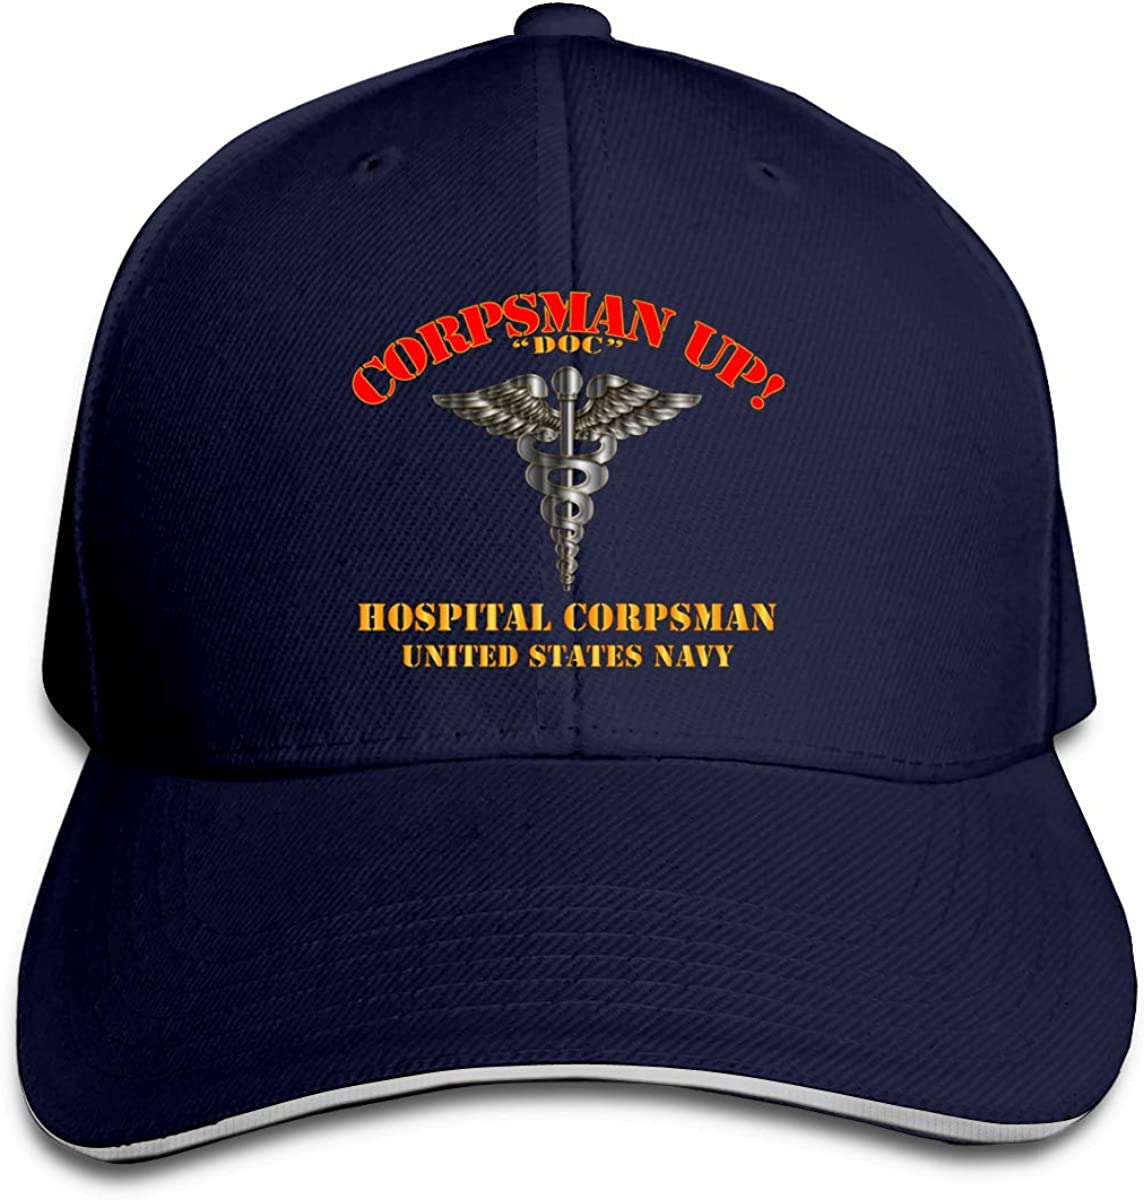 Navy Corpsman Up Doc Us Navy Unisex Adult Baseball Caps Adjustable Sandwich Caps Jeans Caps Adjustable Denim Trucker Cap